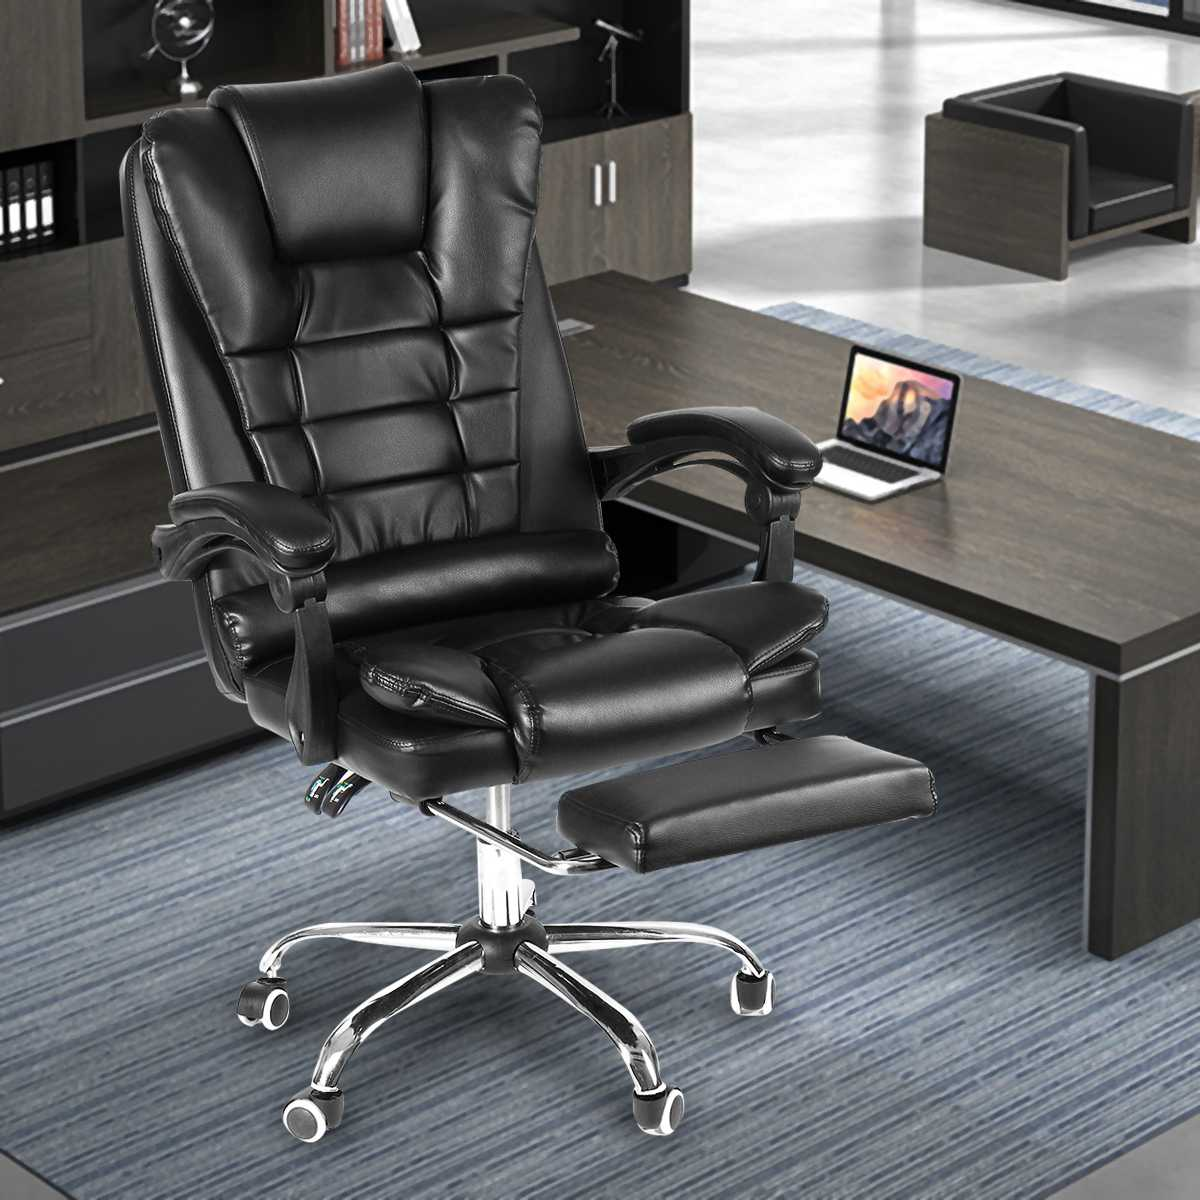 Reclining Office Chair Adjustable Rotating Lift PU Leather Gaming Chair Armchair With Footrest For Home Office Furniture